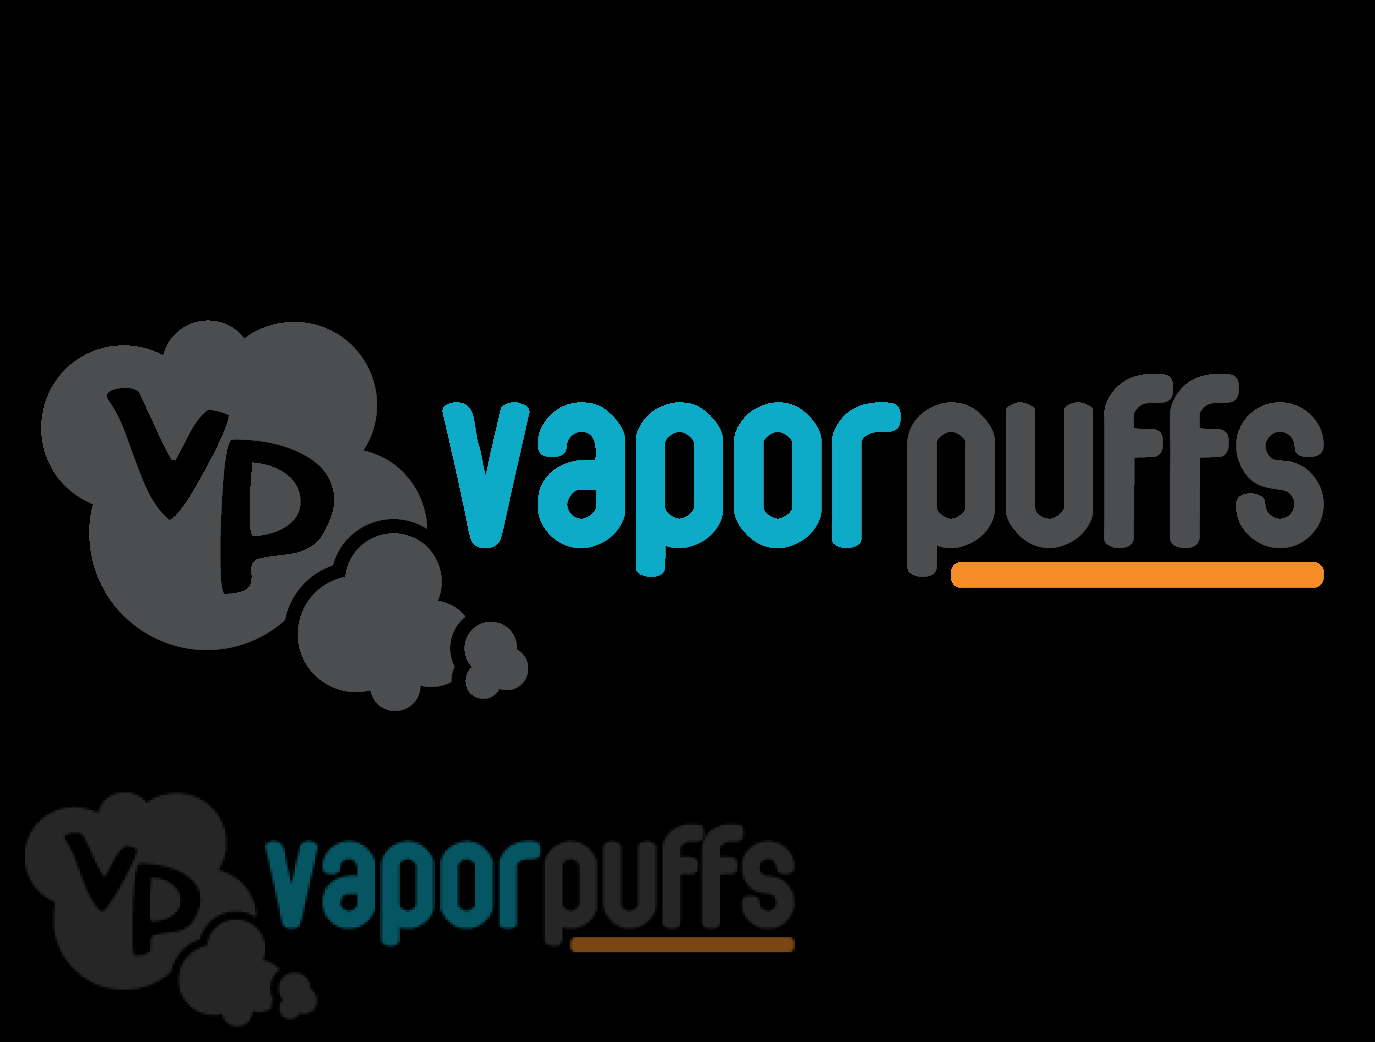 Guide: How To Use The Vision Spinner 2 - Vapor Puffs